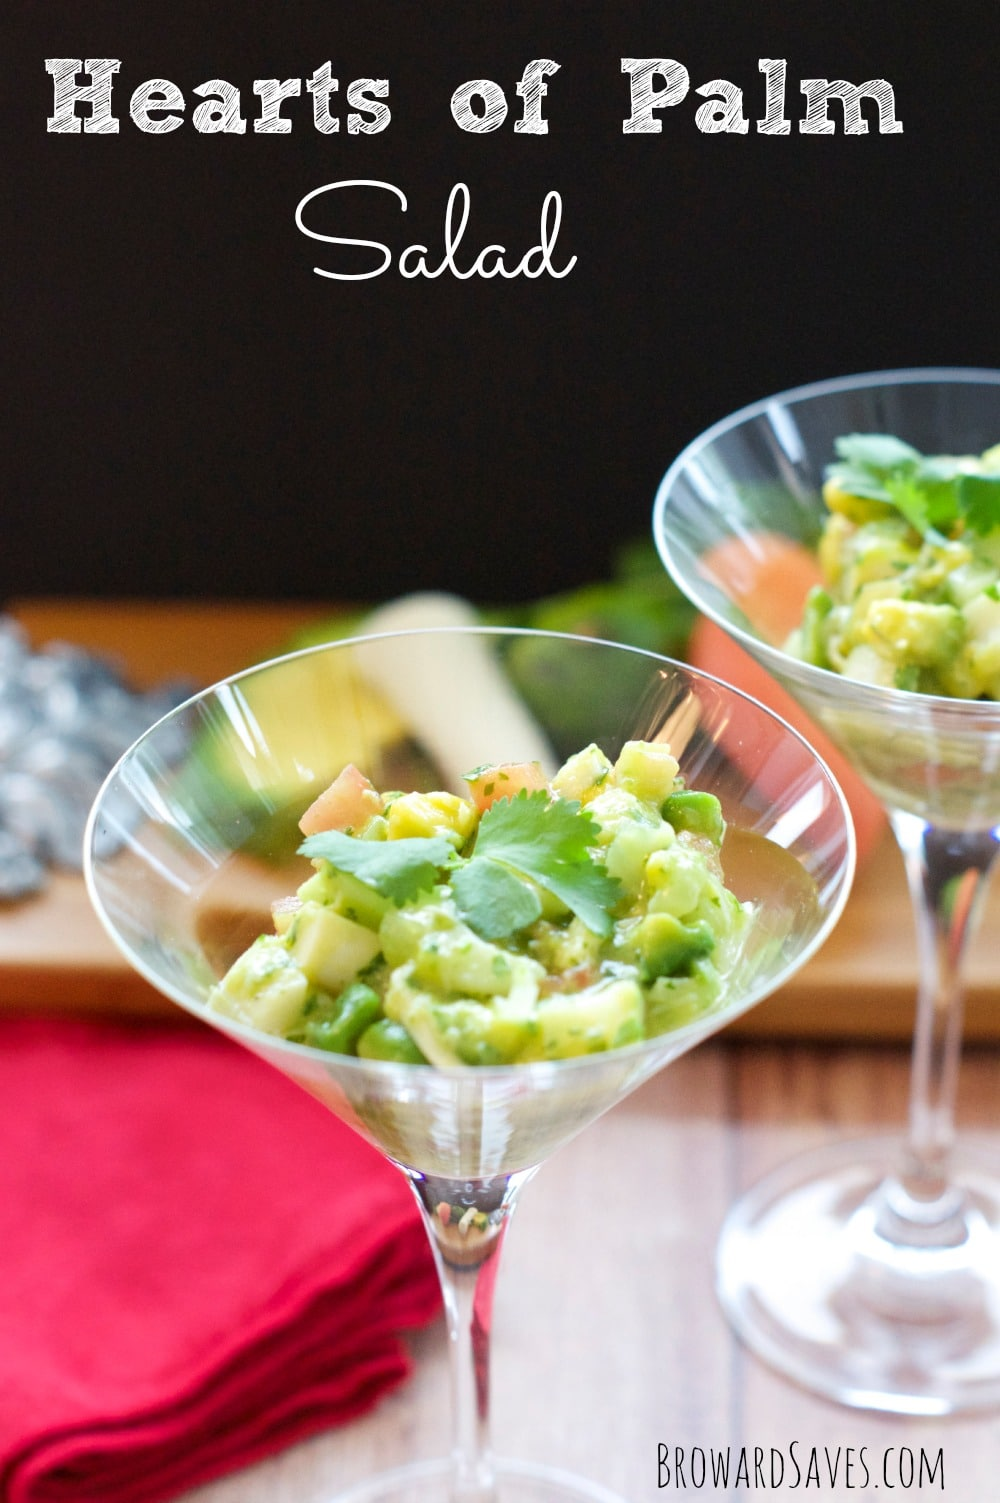 ... Hearts Of Palm salad is made in minutes and satisfied a crowd. Forget